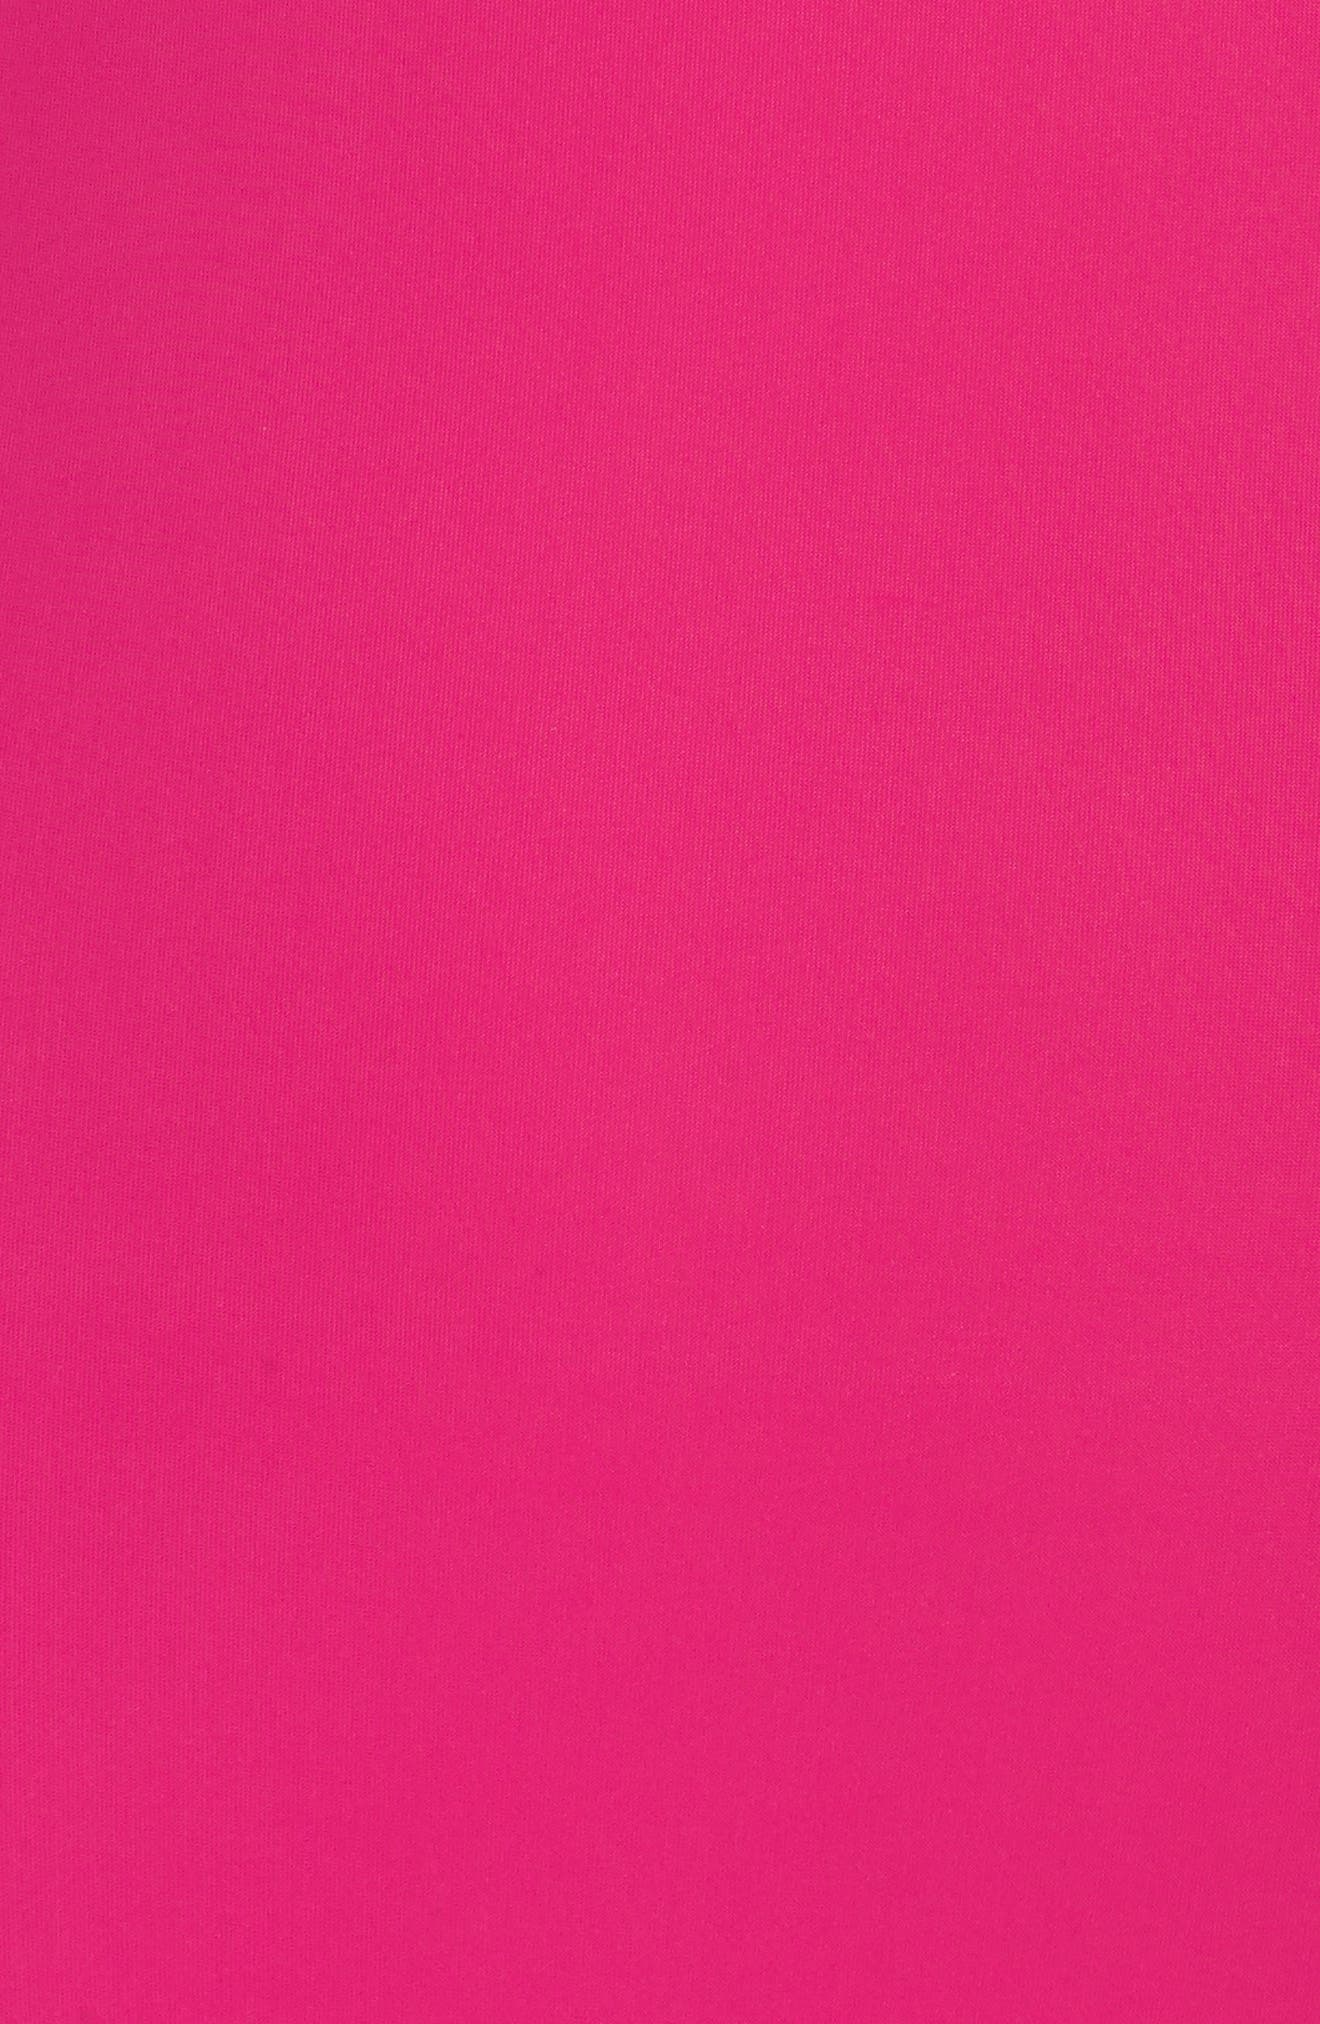 Halter One-Piece Swimsuit,                             Alternate thumbnail 6, color,                             Hot Pink